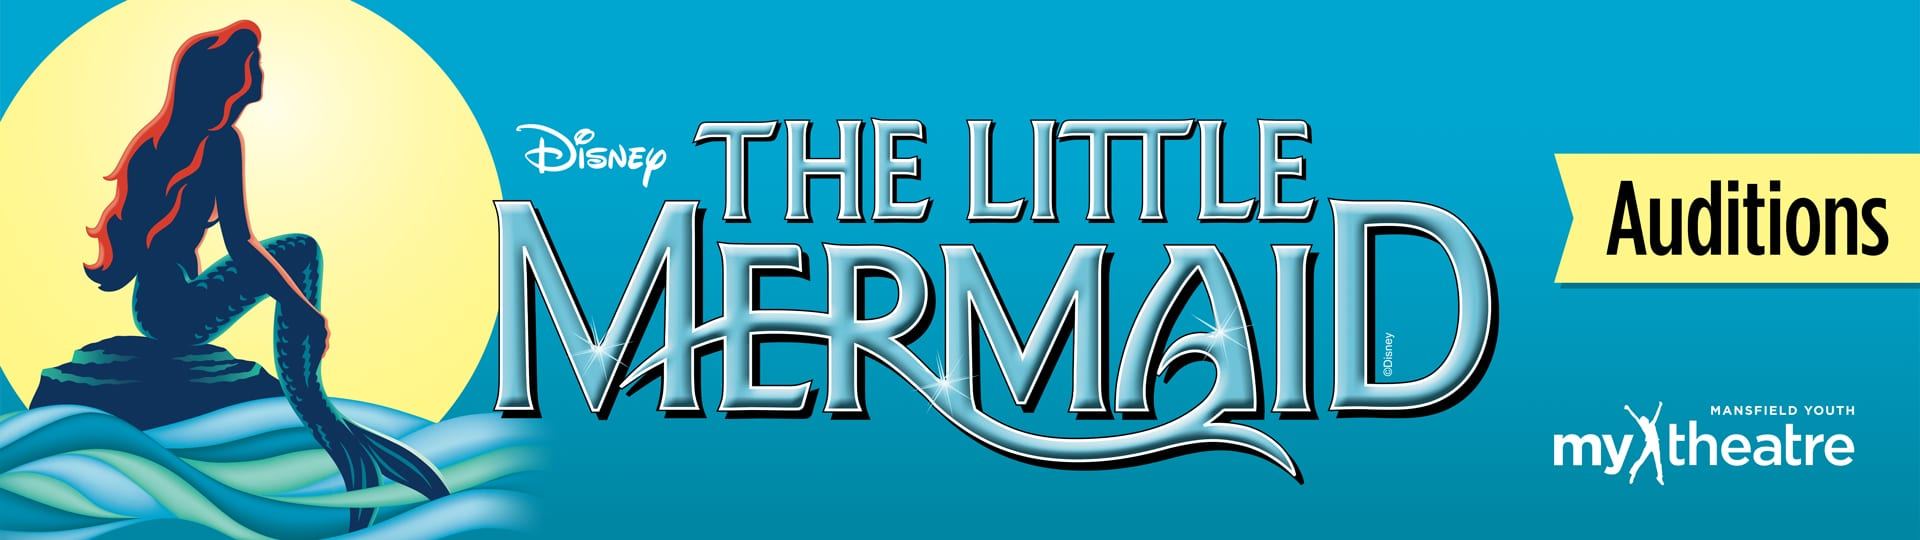 MY Theatre: Disney's The Little Mermaid (Auditions)